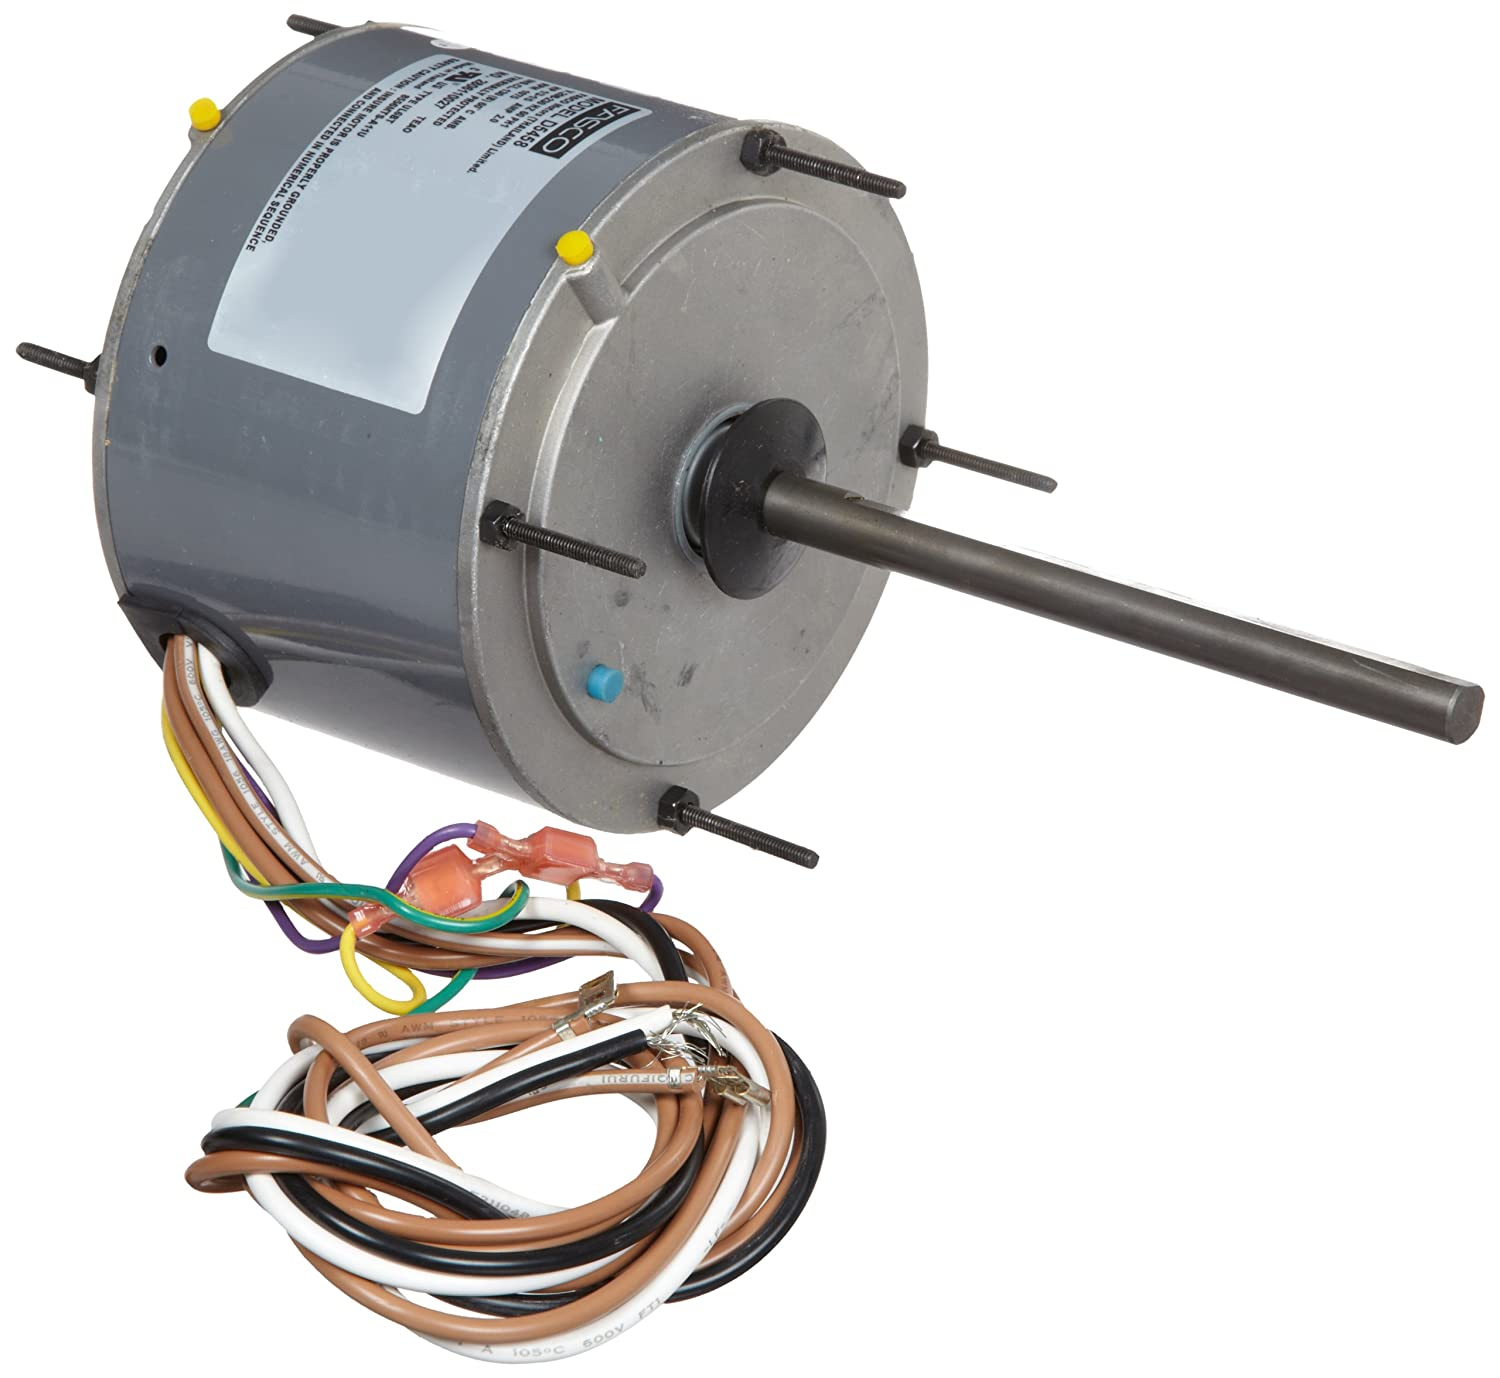 Fasco D5458 5.6 Frame Open Ventilated Permanent Split Capacitor Condenser Fan Motor with Sleeve Bearing, 1/5, 1/4, 1/3 HP, 1075rpm, 208-230V, 60Hz, 2 amps by Fasco B0099BCGZS